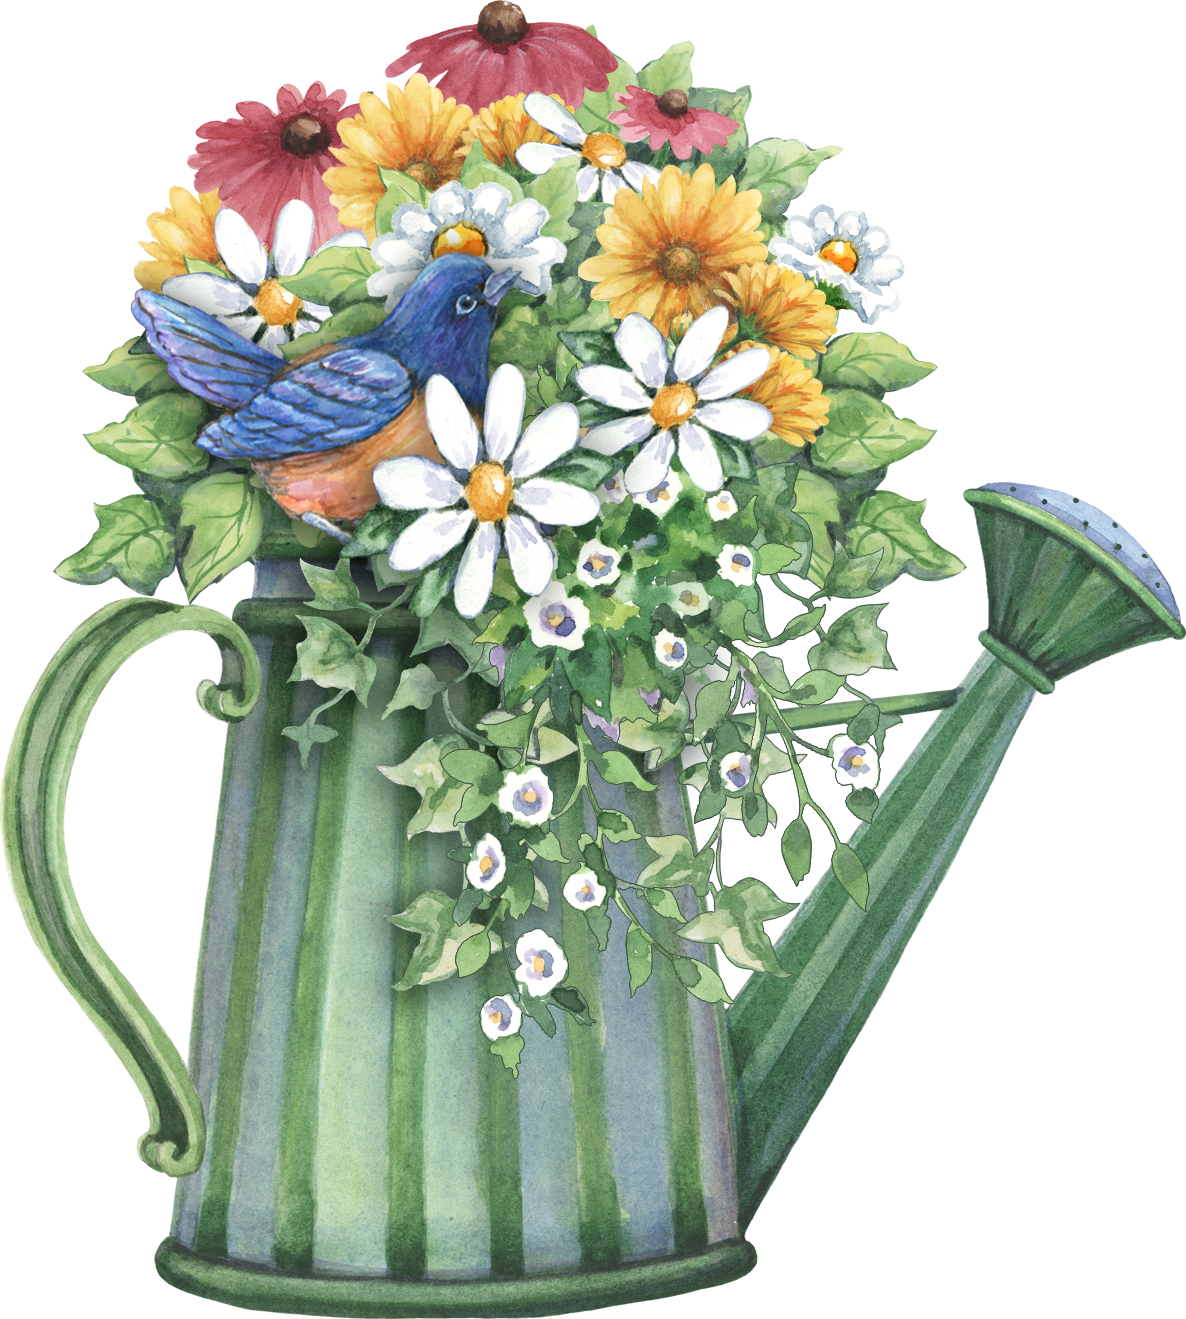 Raindrop clipart spring. Watering can full of